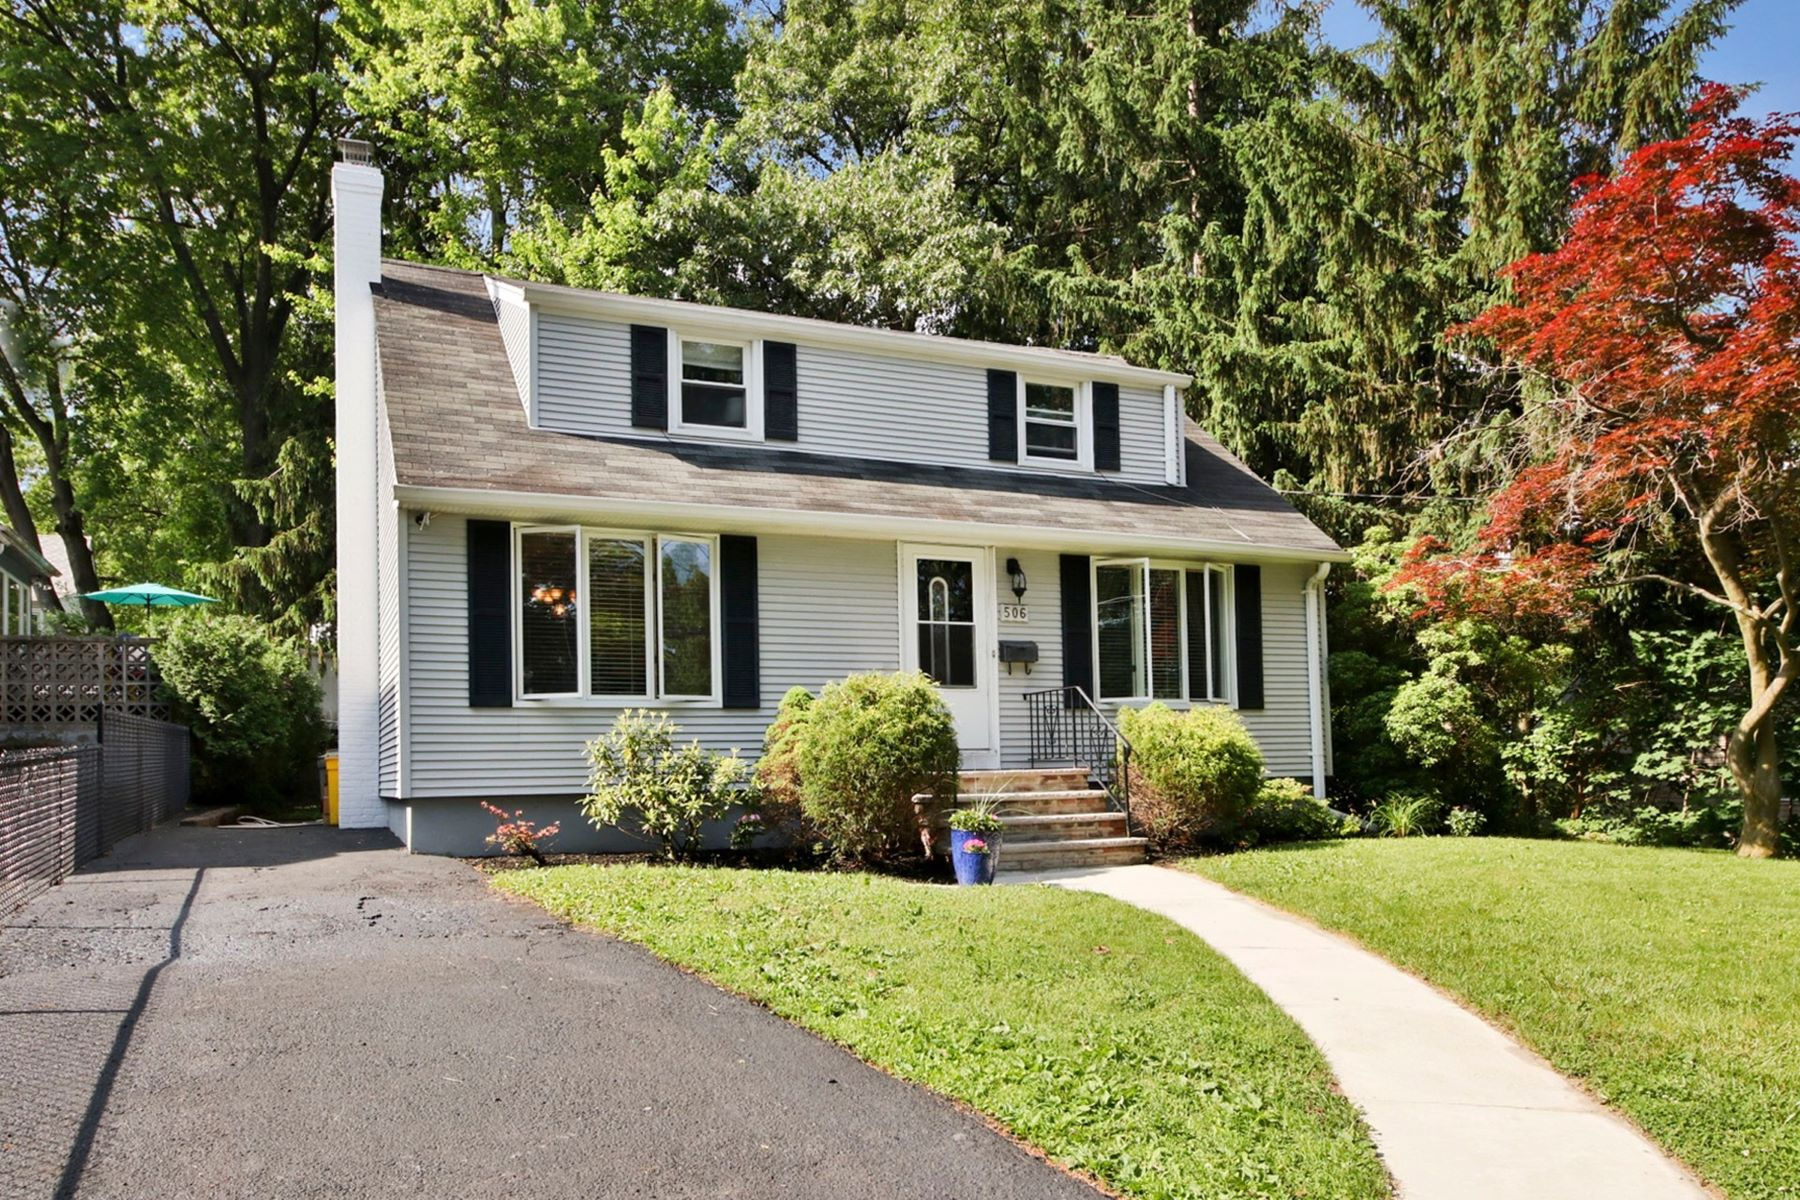 Single Family Home for Sale at Beautifully Renovated 506 Elizabeth St, New Milford, New Jersey 07646 United States